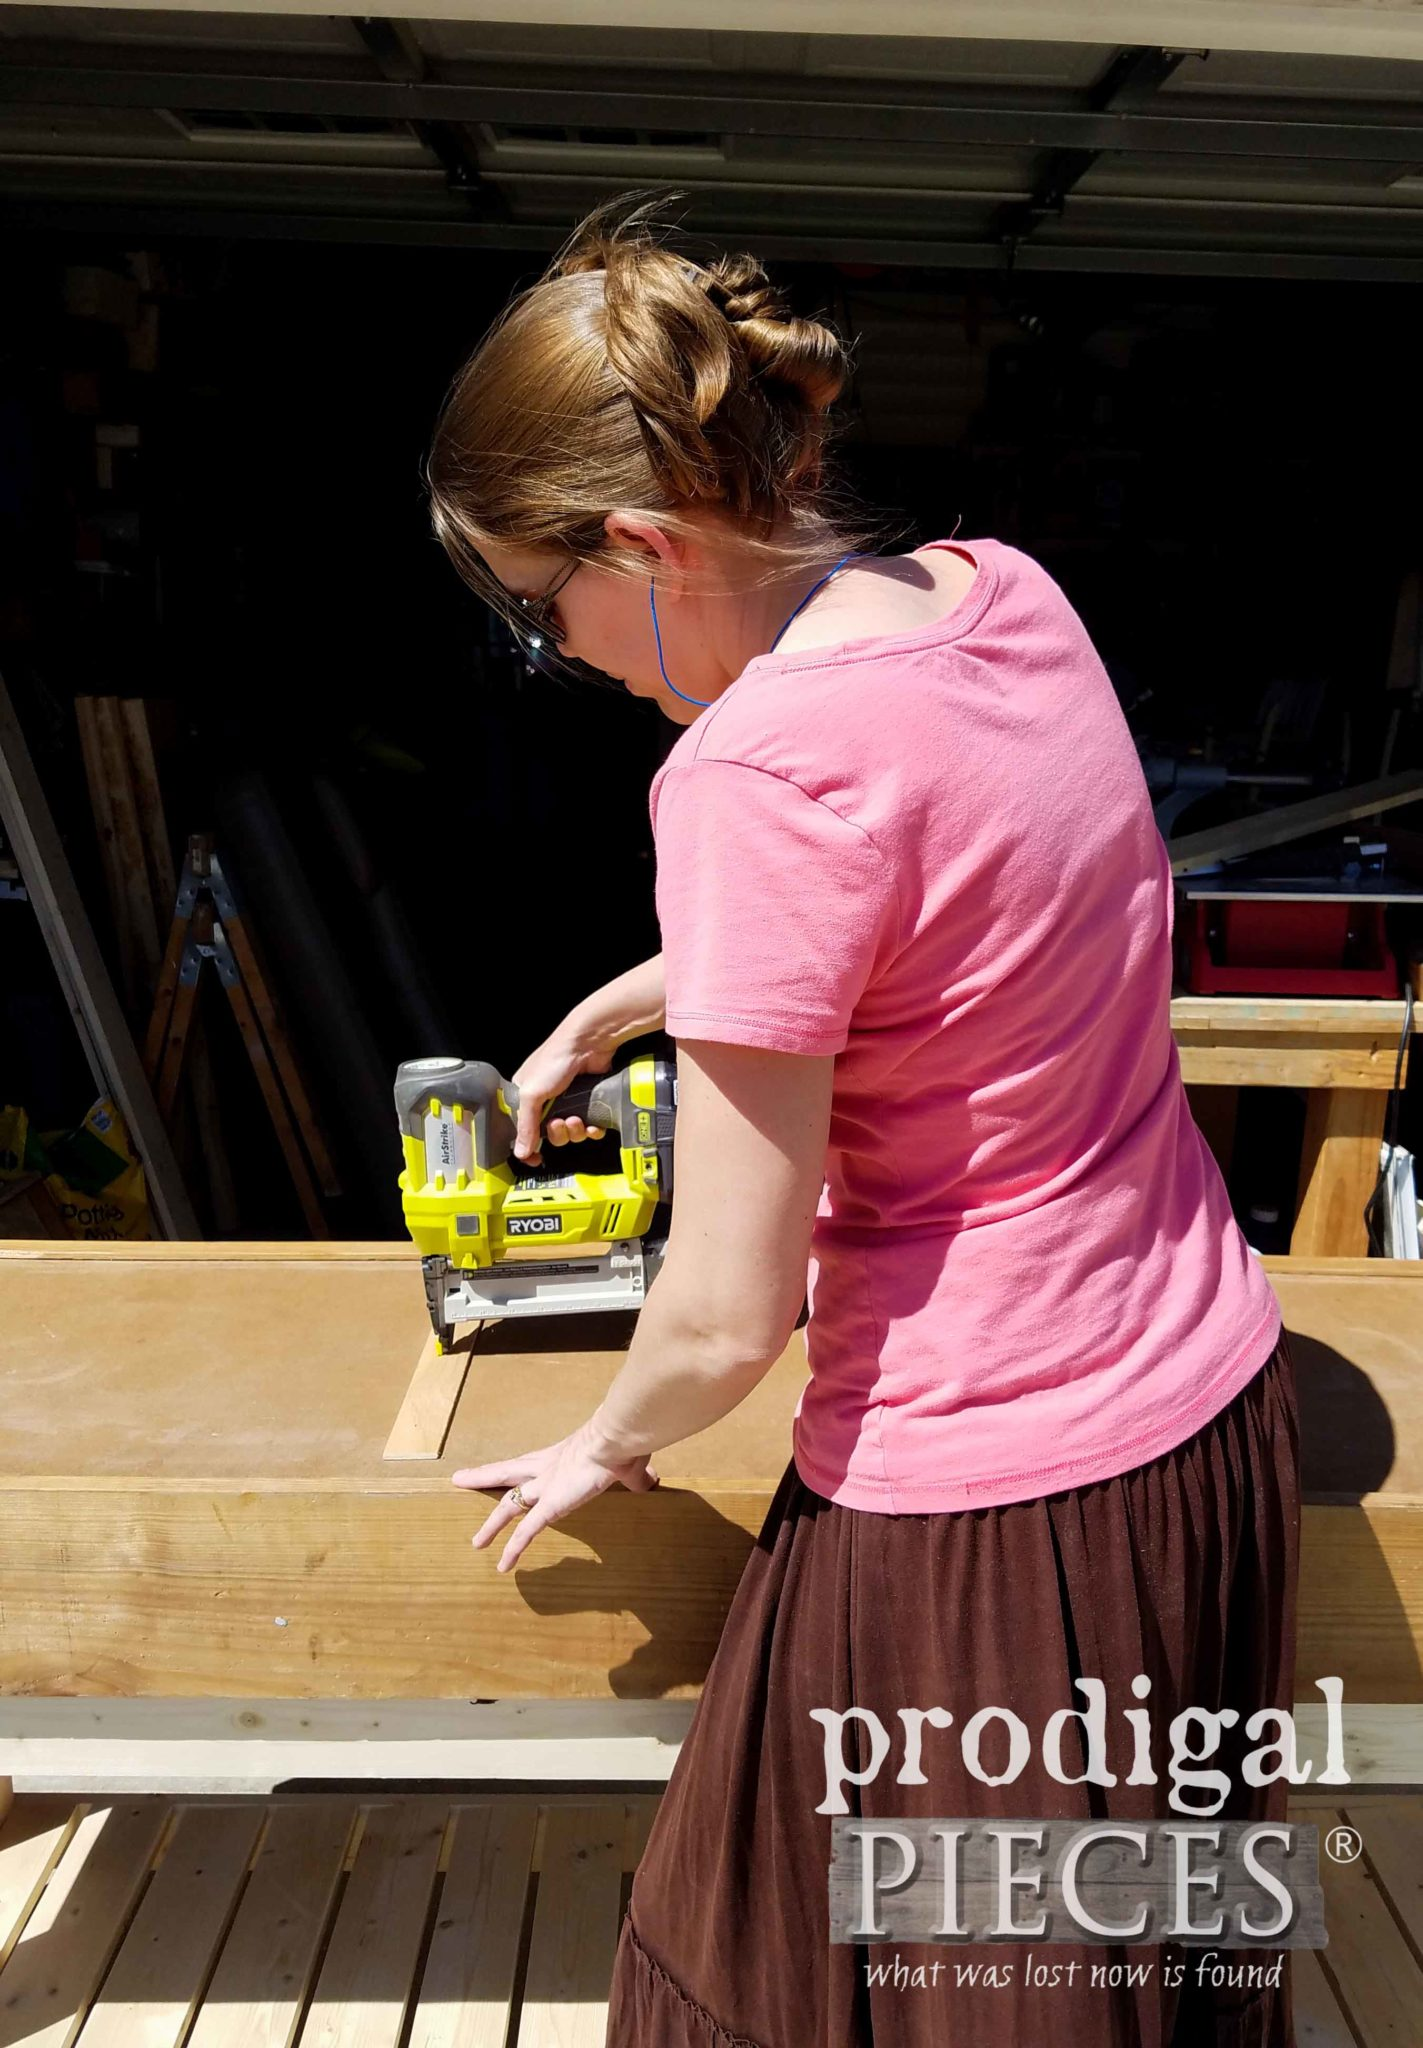 Ryobi AirStrike Cordless Stapler to help build DIY workbench by Prodigal Pieces | prodigalpieces.com